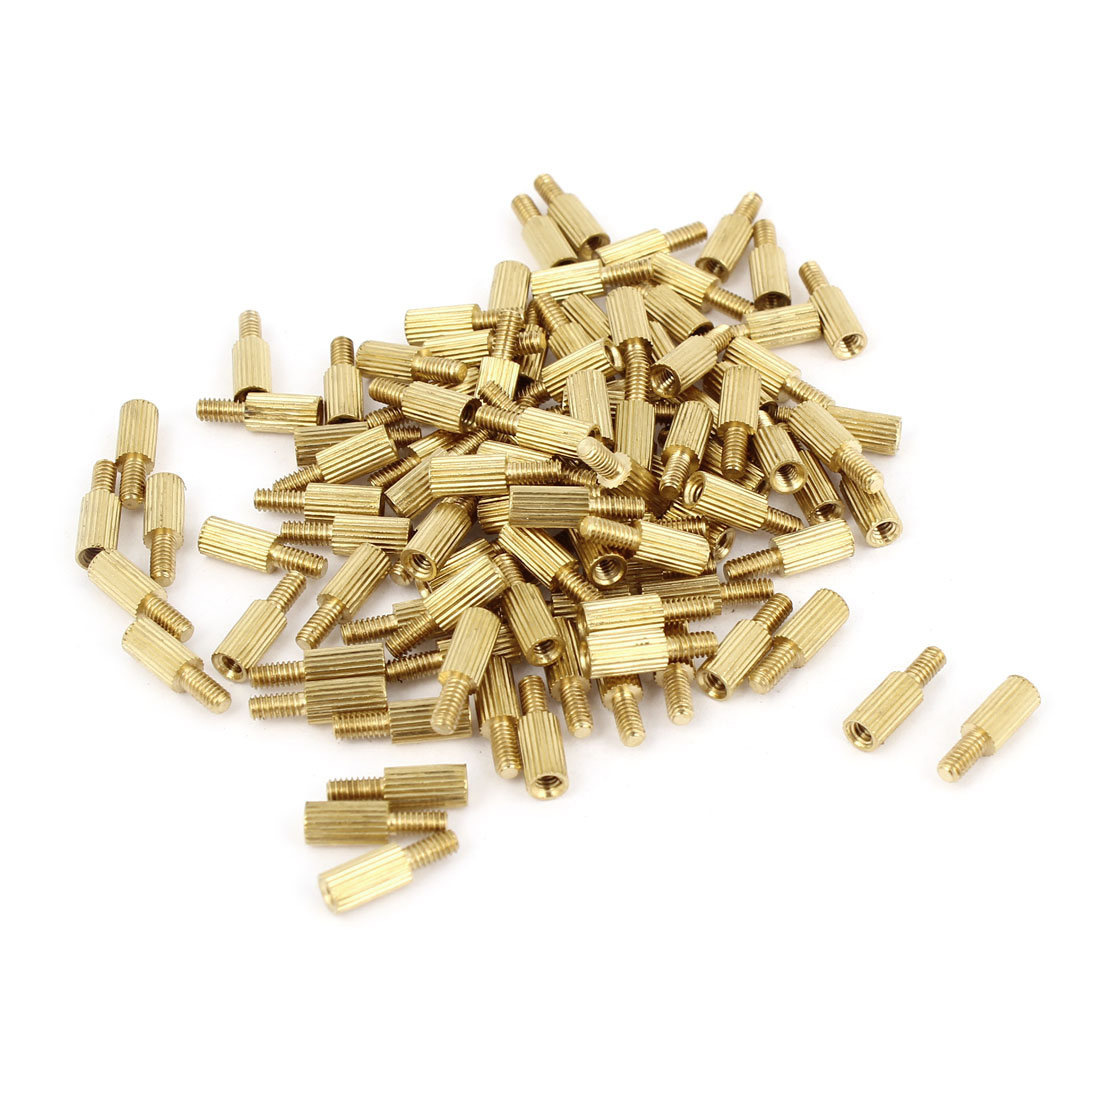 100Pcs Male to Female Threaded PCB Board Brass Pillars Standoff M2x6mm